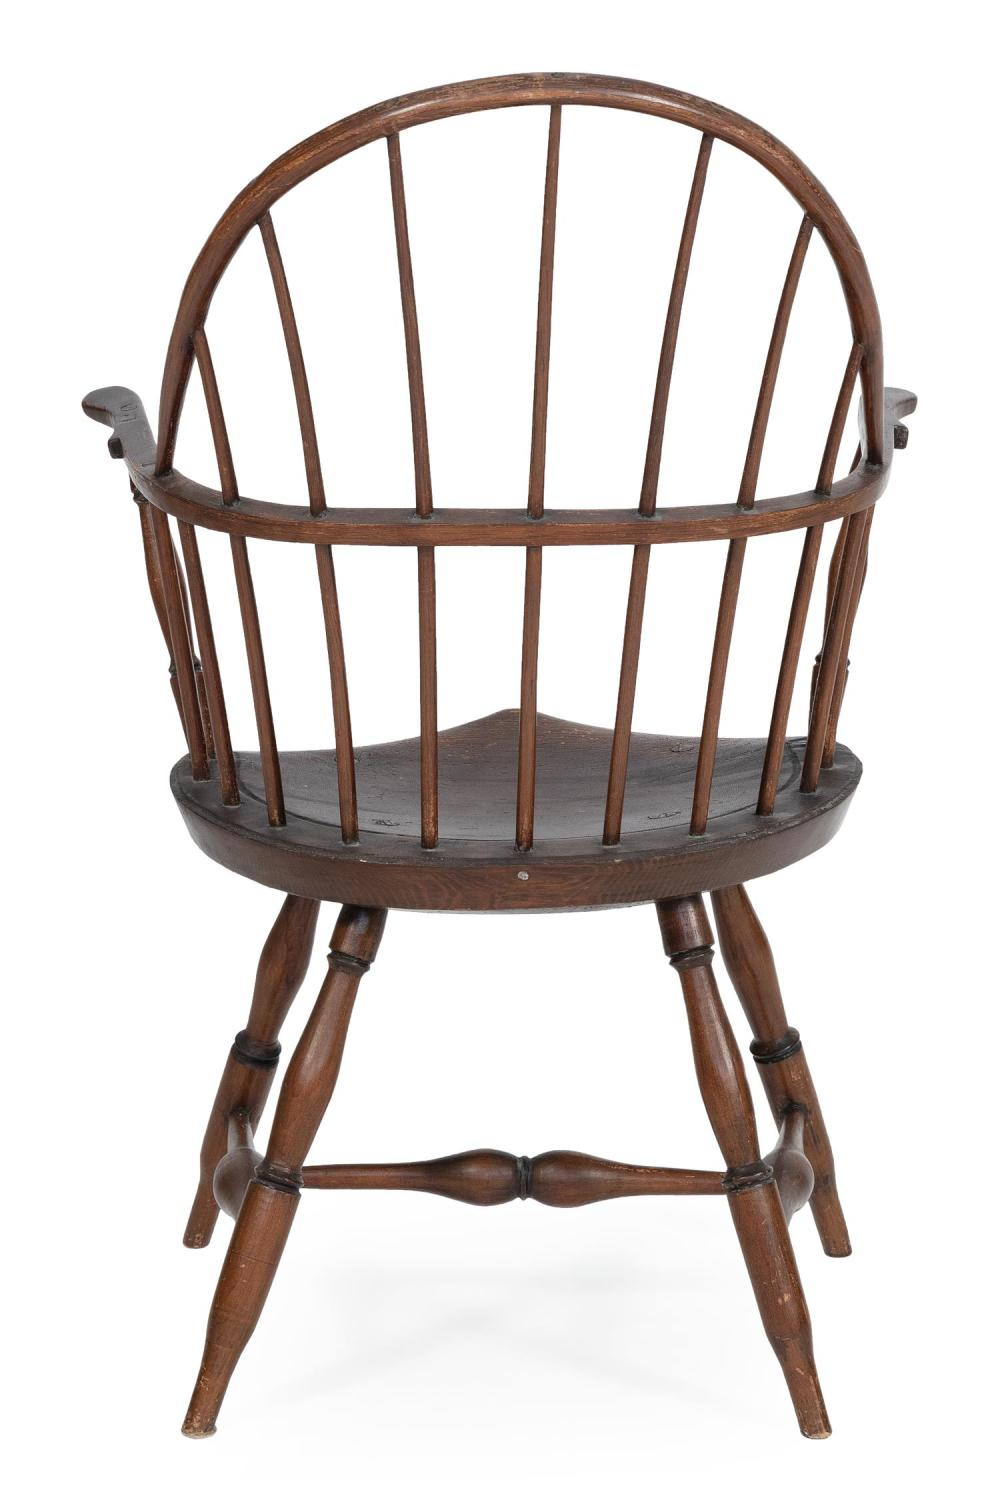 WINDSOR BOWBACK ARMCHAIR Hardwood under an old deep brown finish. Back height 38.25